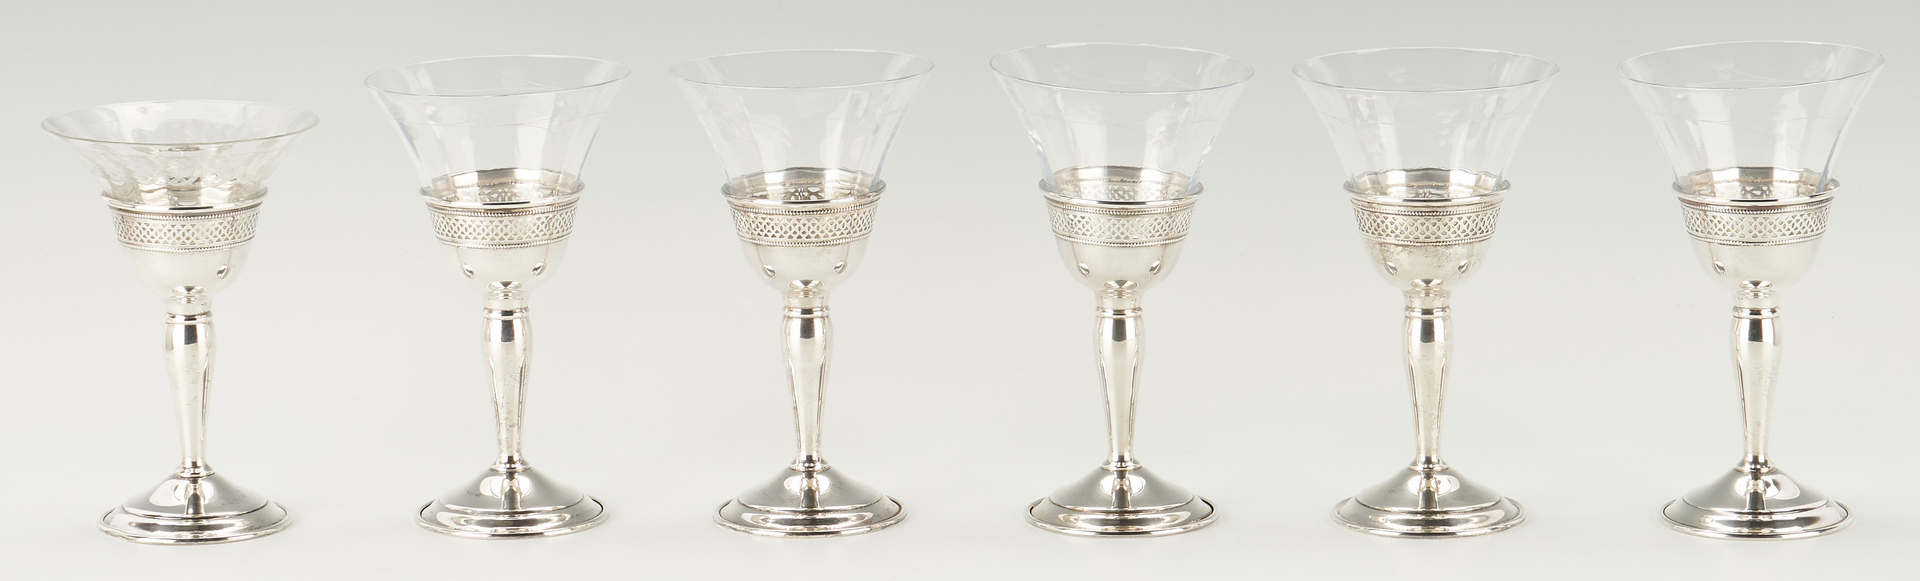 Lot 815: 17 Silver Items, incl. 6 Redlich Goblets, Kiddush Cup